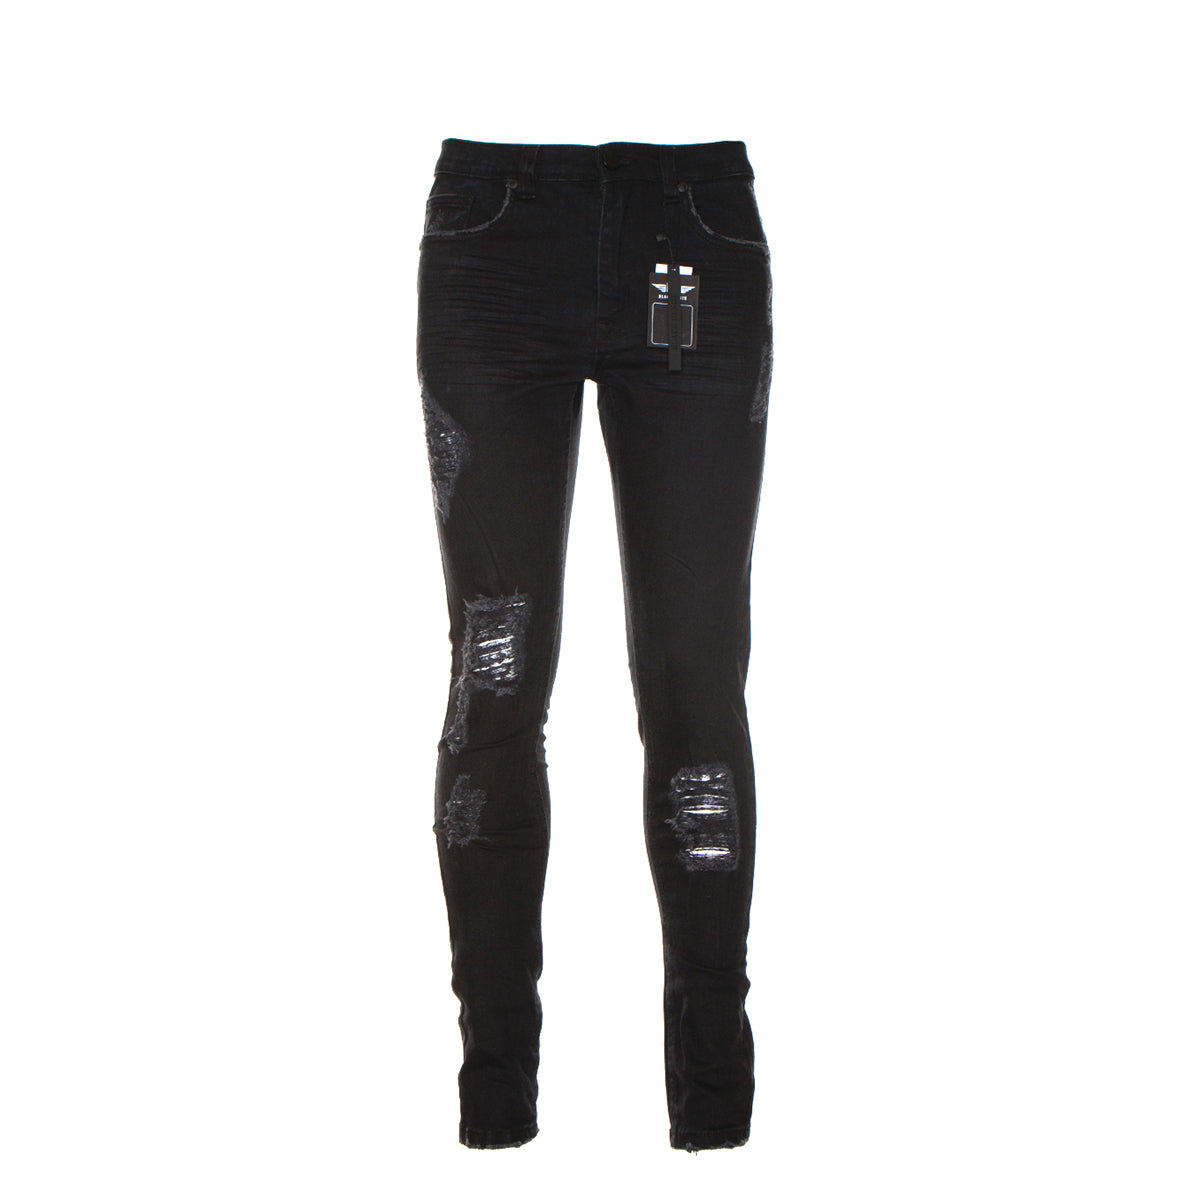 Black Denim Abyss Men's Skinny Jeans